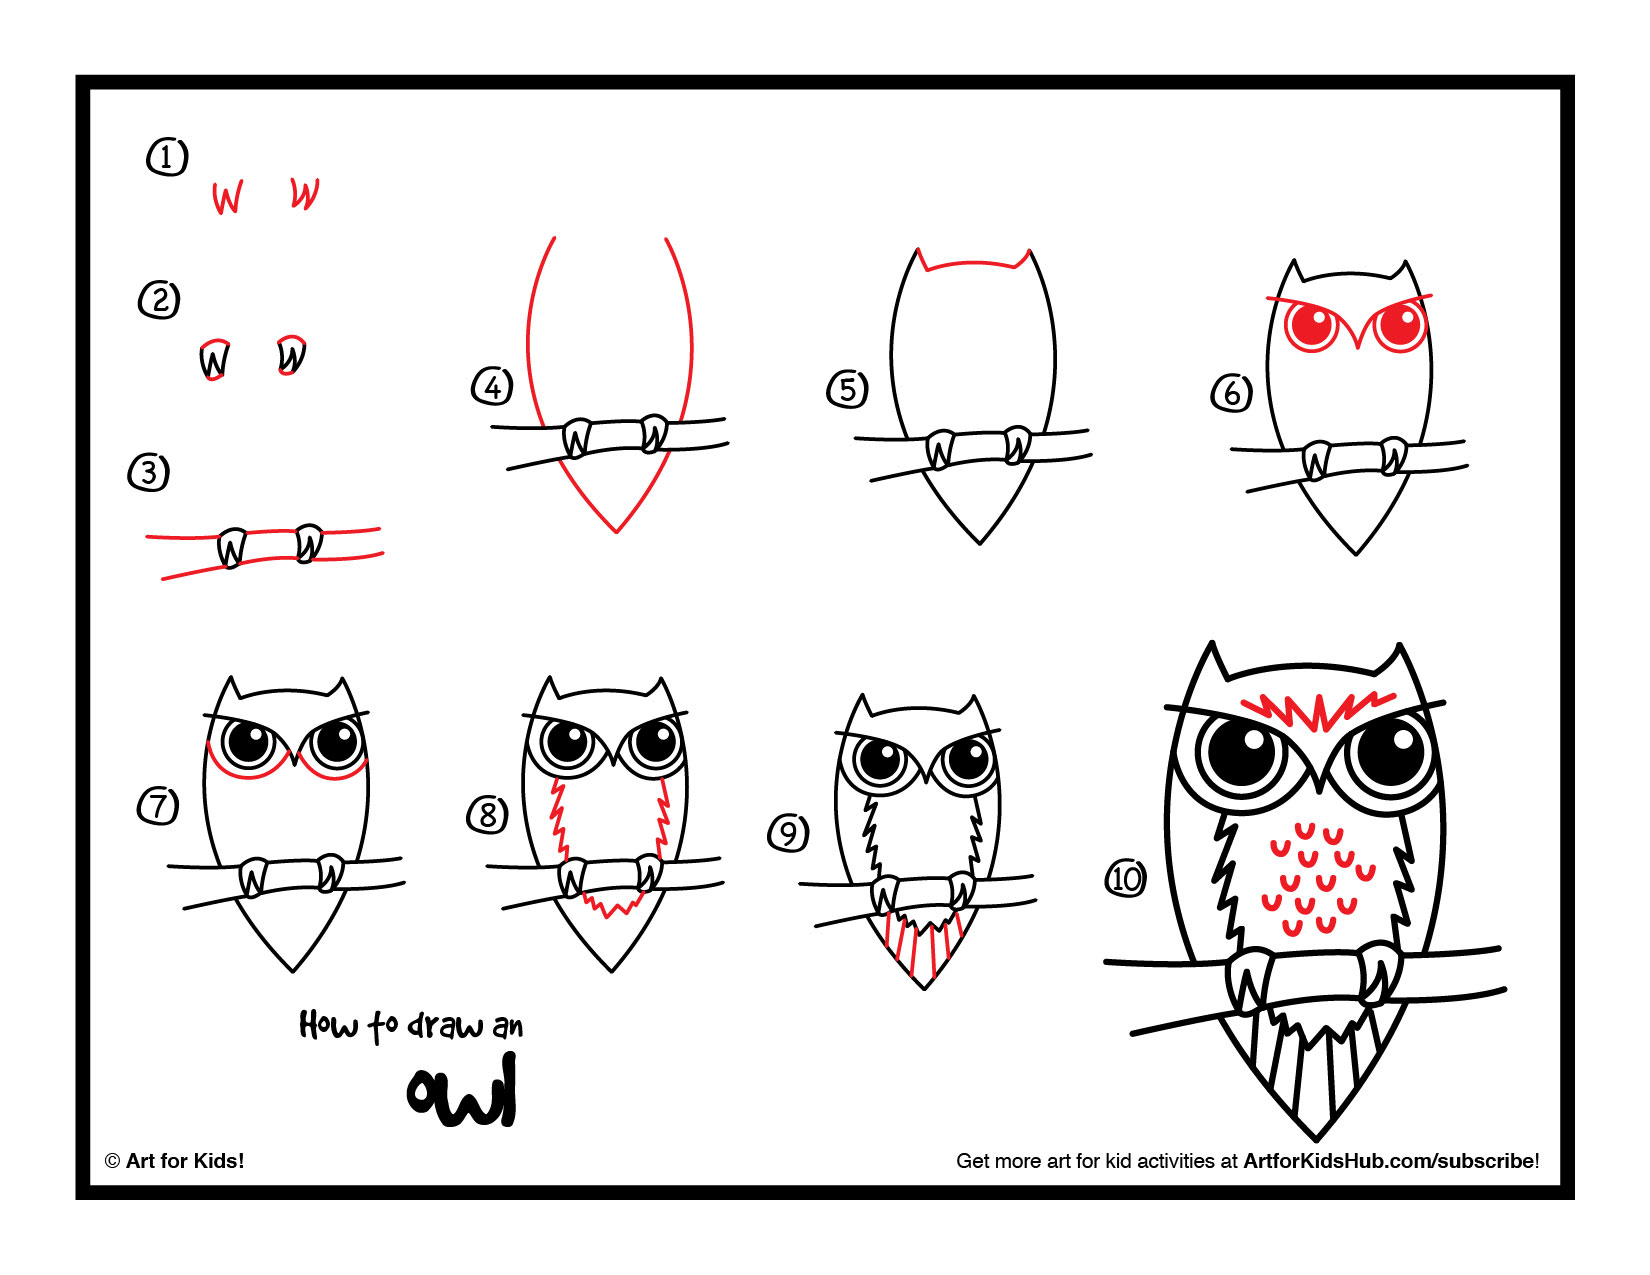 Video How To Draw An Owl For Kids